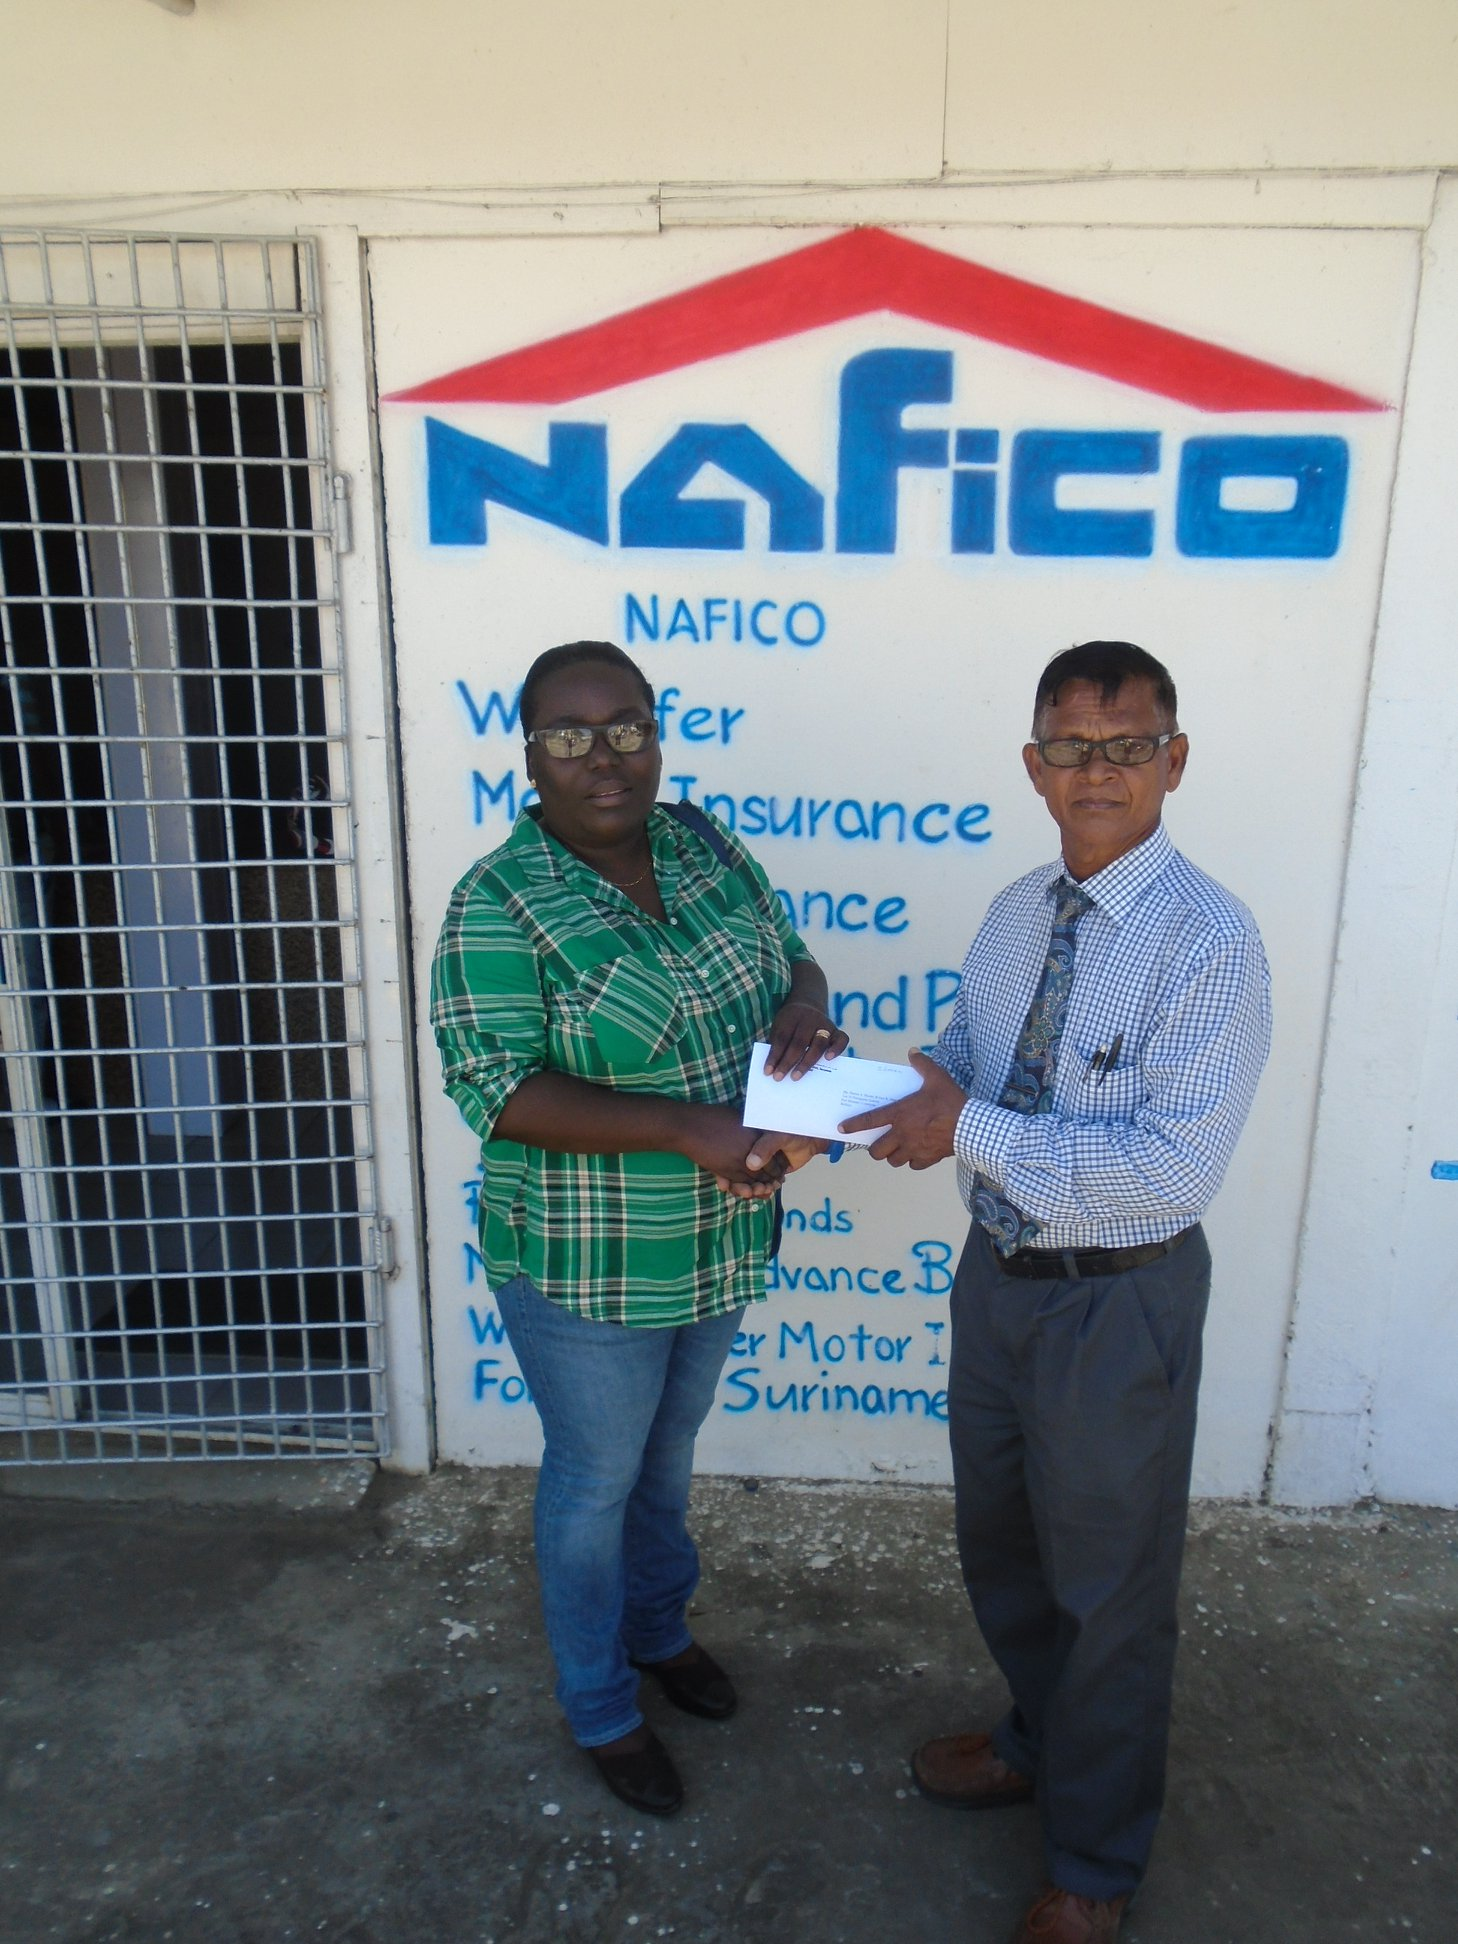 NALICO/NAFICO settles multi-million dollar claim as a result of windstorm which caused damage to building in Port Mourant, Corentyne Berbice.  In picture, Jerome Soman, Nafico's Manager, hands over a cheque to the affected policy holder to cover the value of the damages.  At NAFICO, we ensure you are properly covered against these unexpected events.